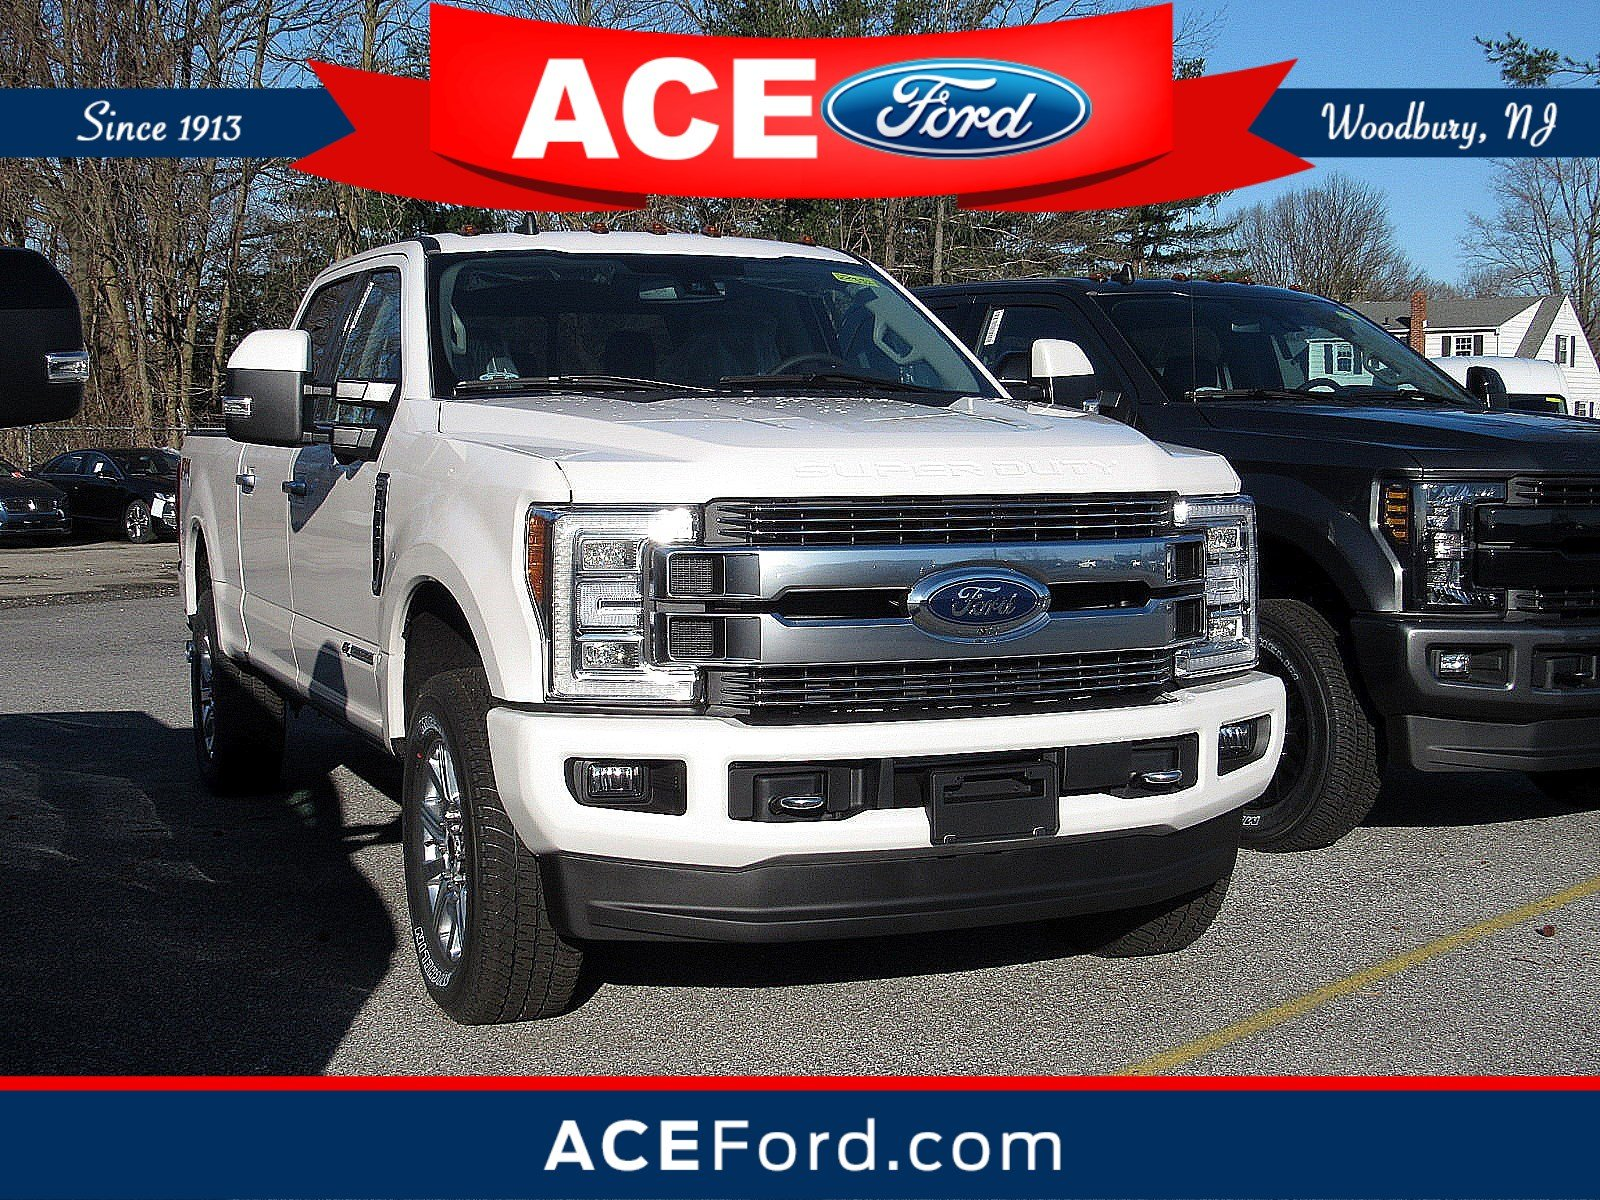 2019 Ford Superduty F-250 Limited Truck